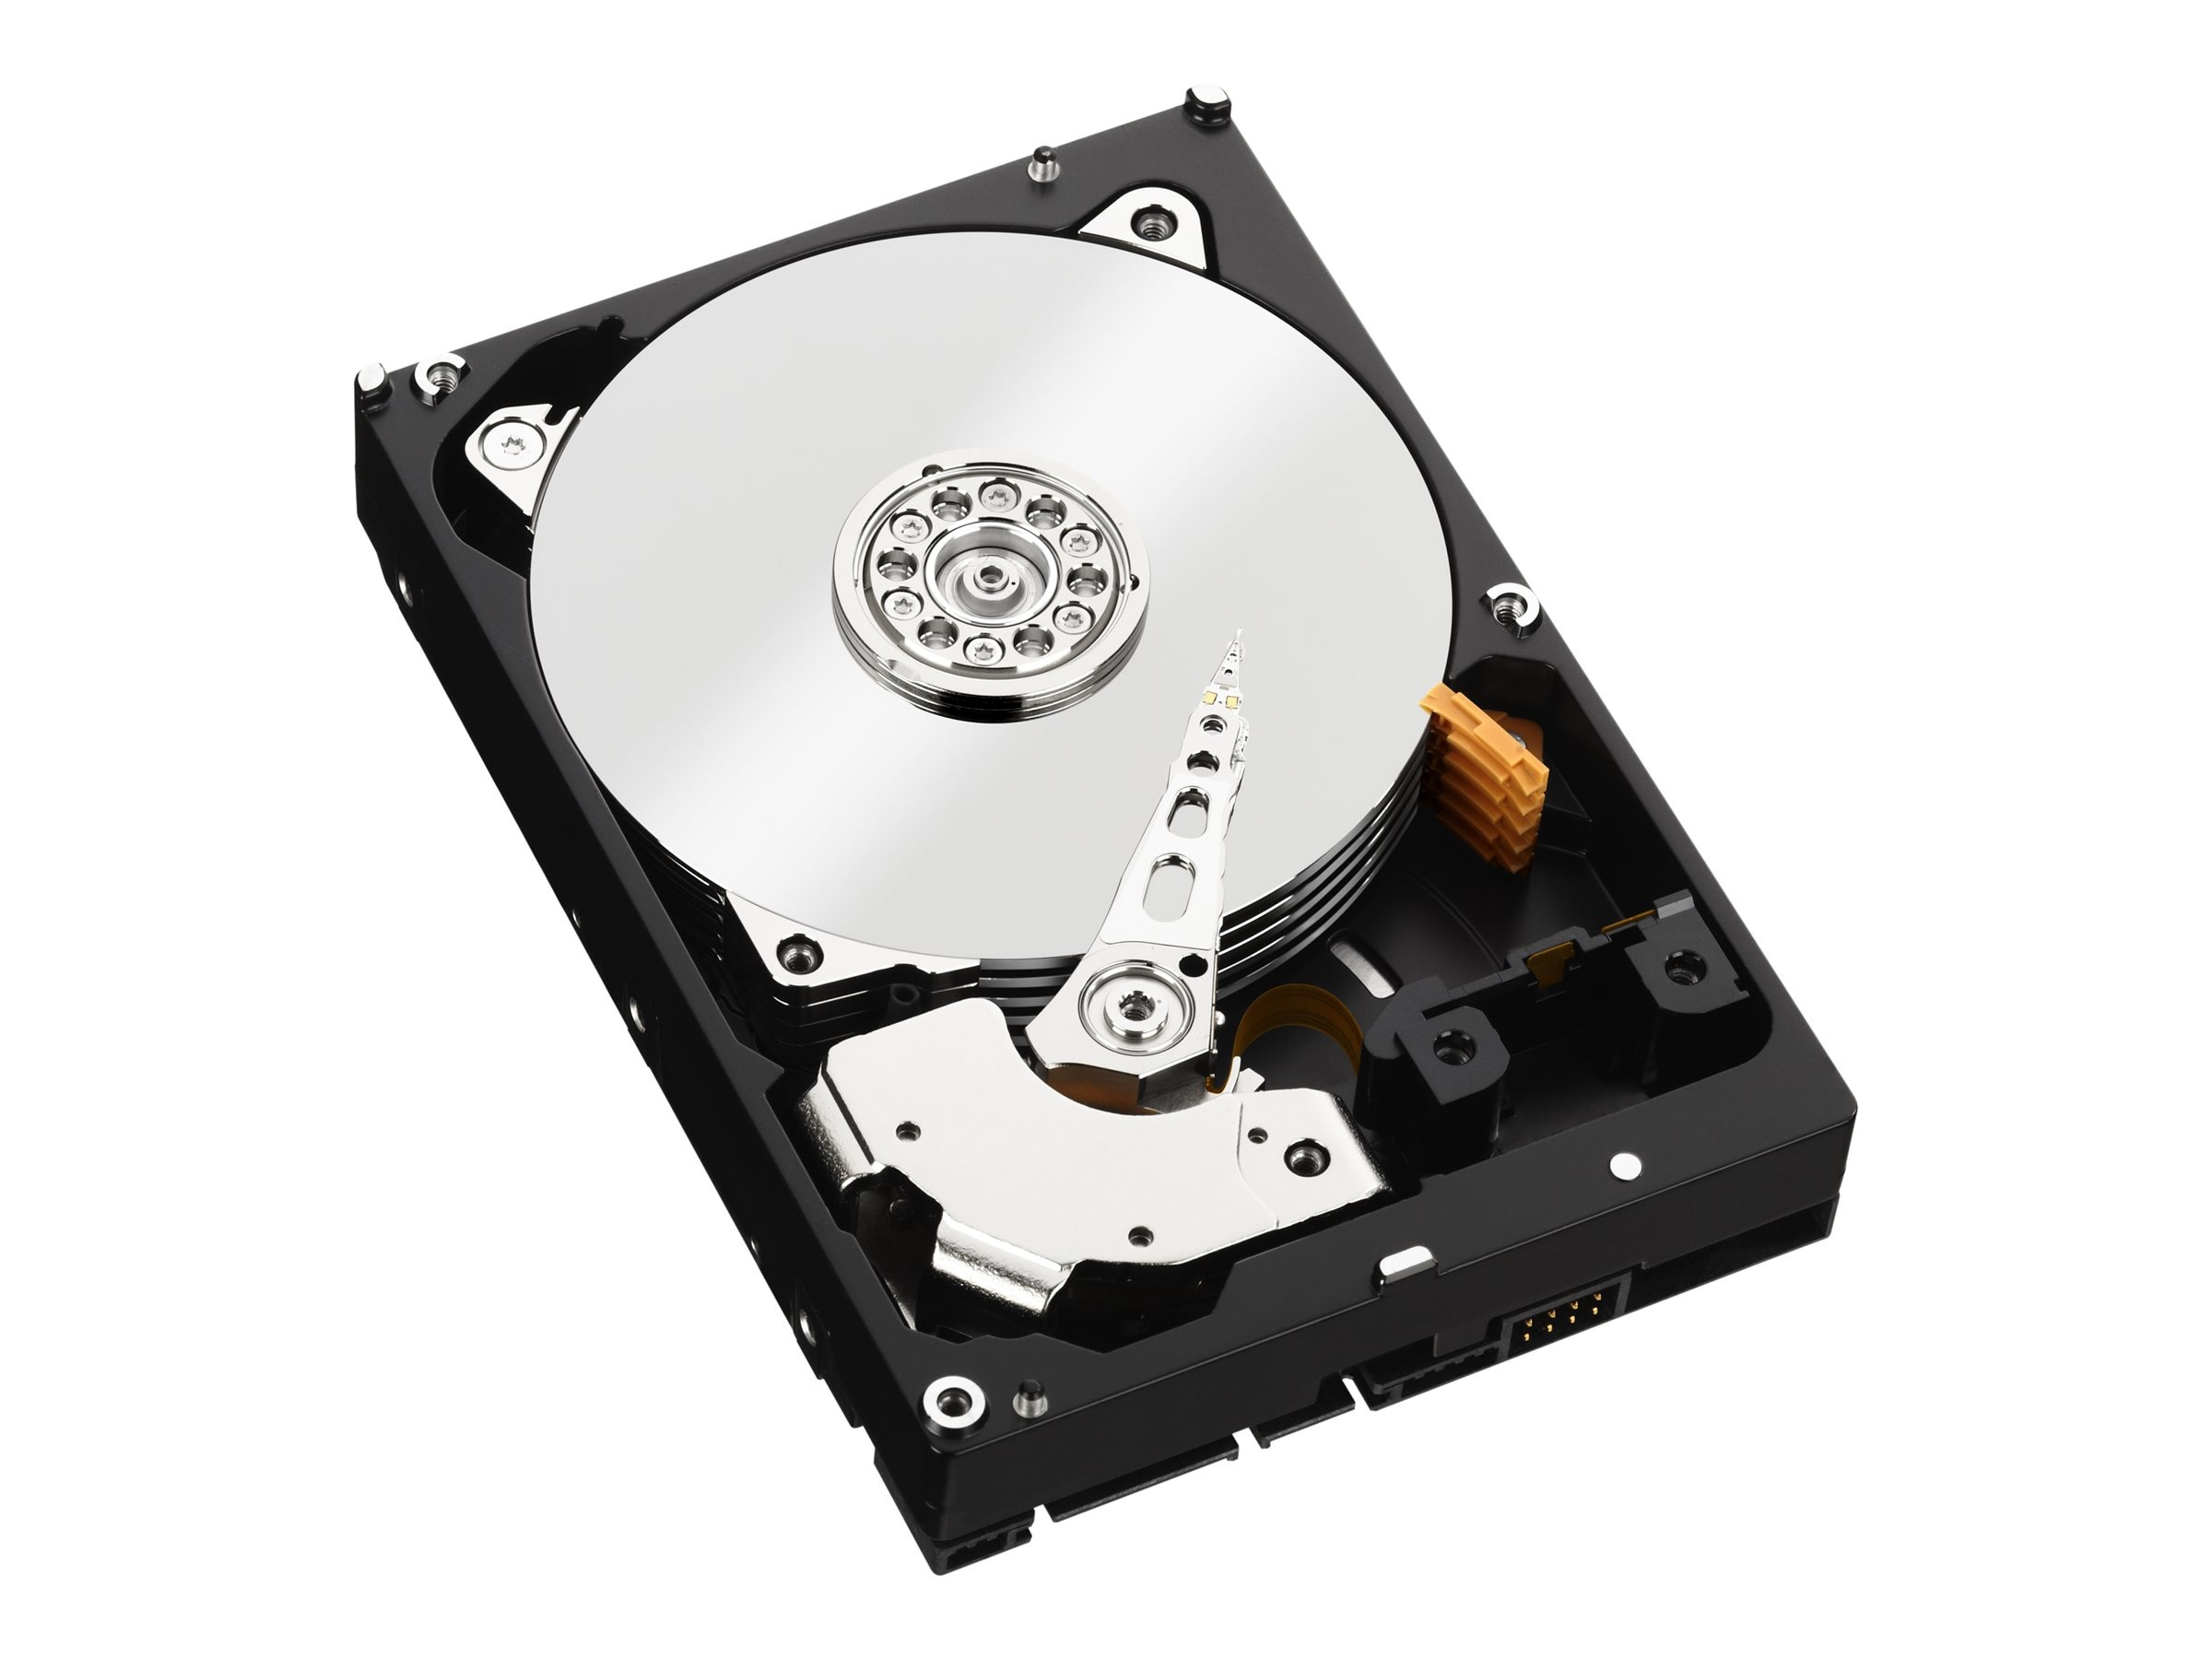 WD WD6001F9YZ Image 7